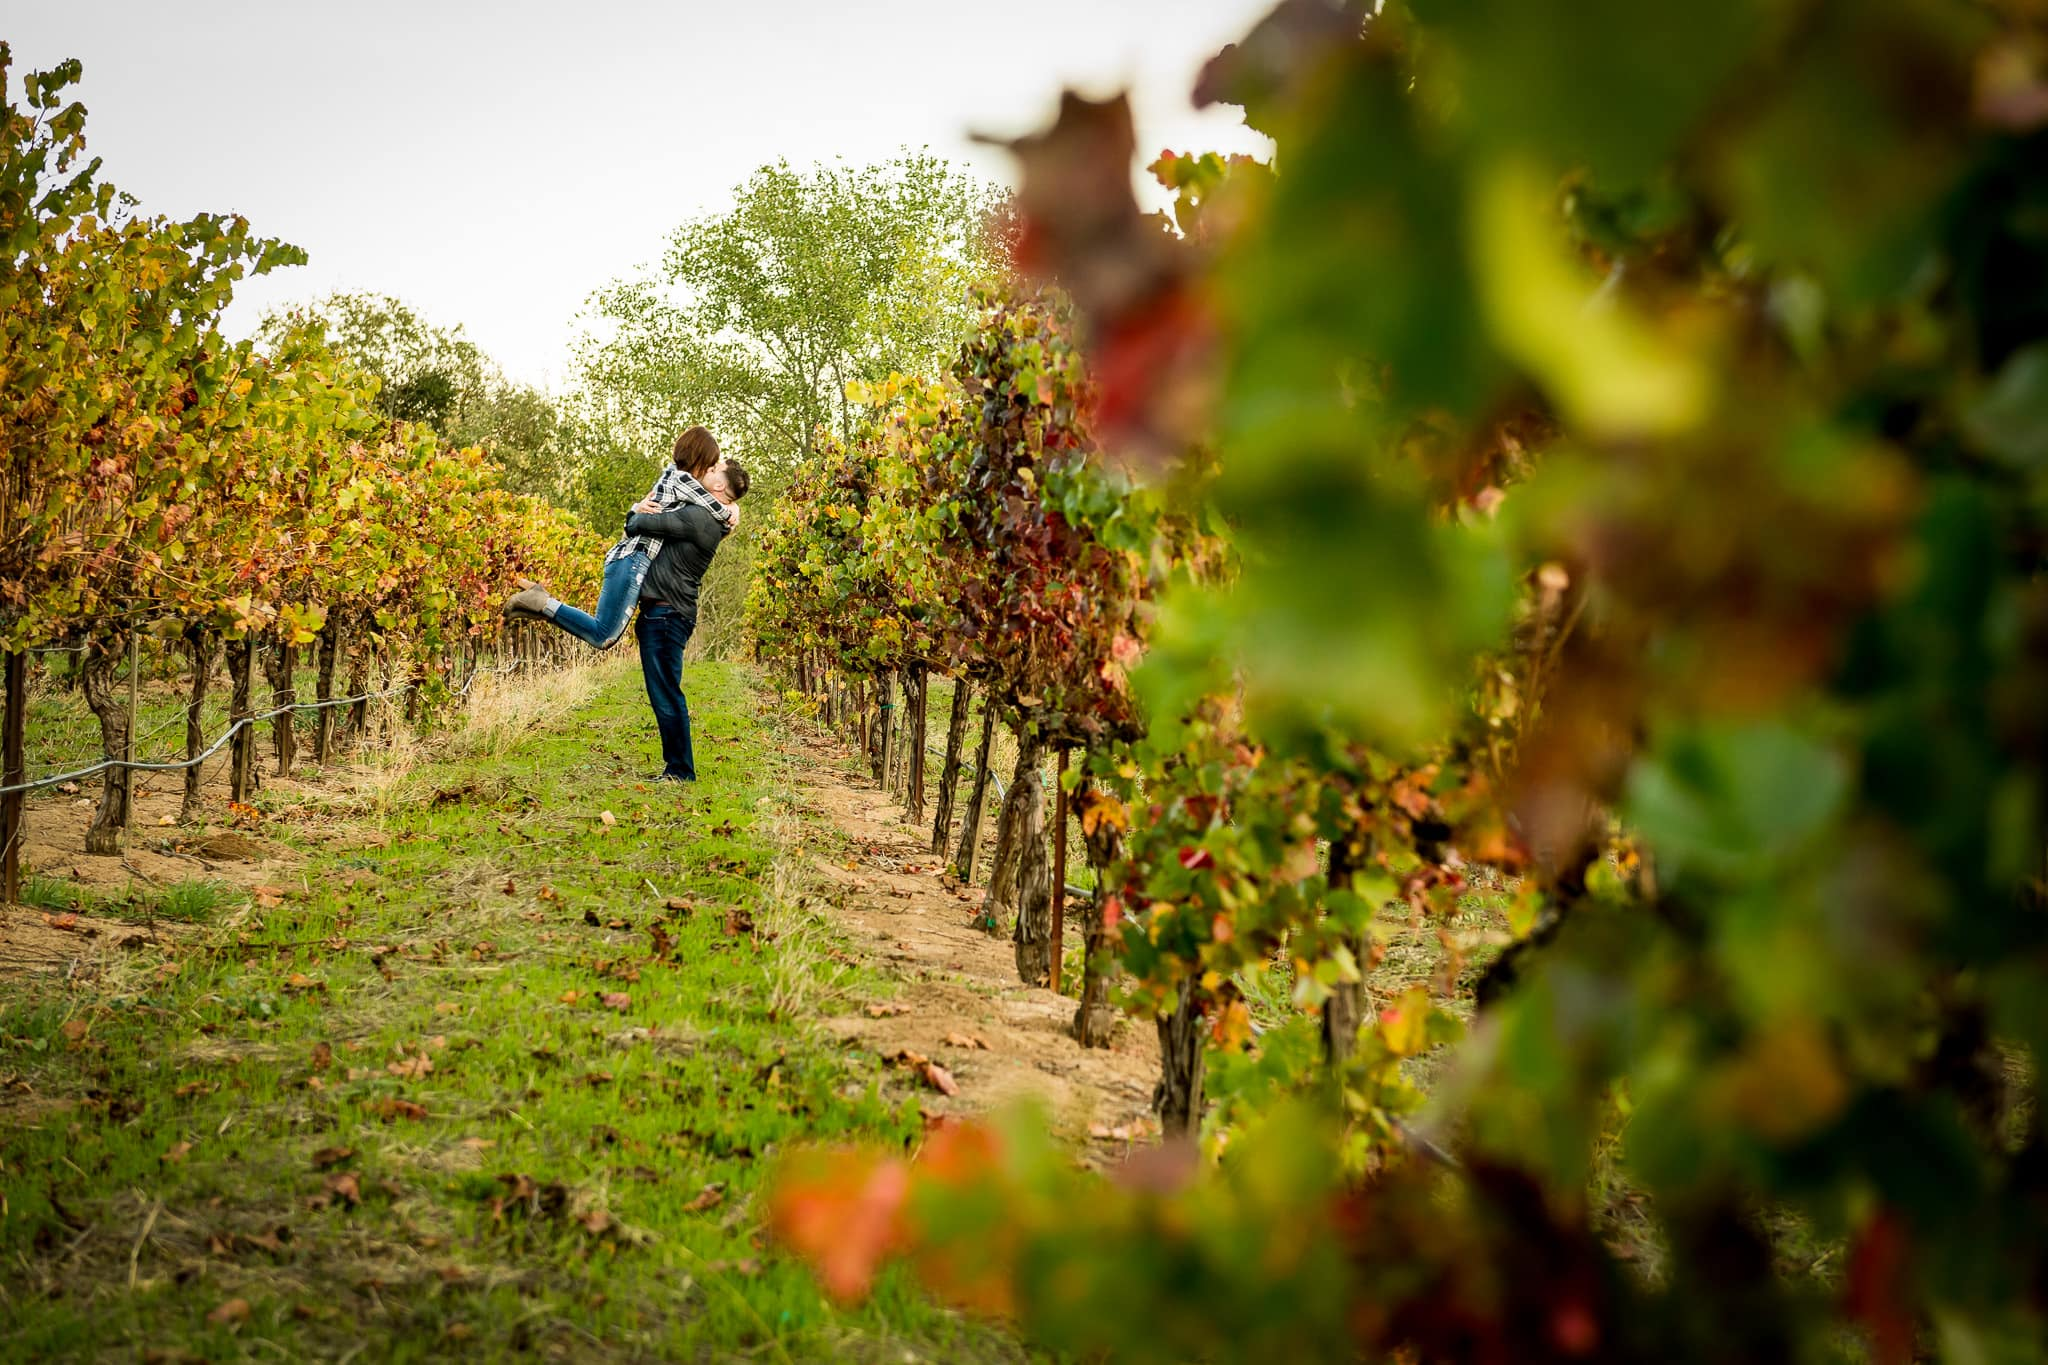 An engaged couple shares a passionate kiss in between colorful rows of grapes at Artesa Winery's Vineyard in Napa Valley